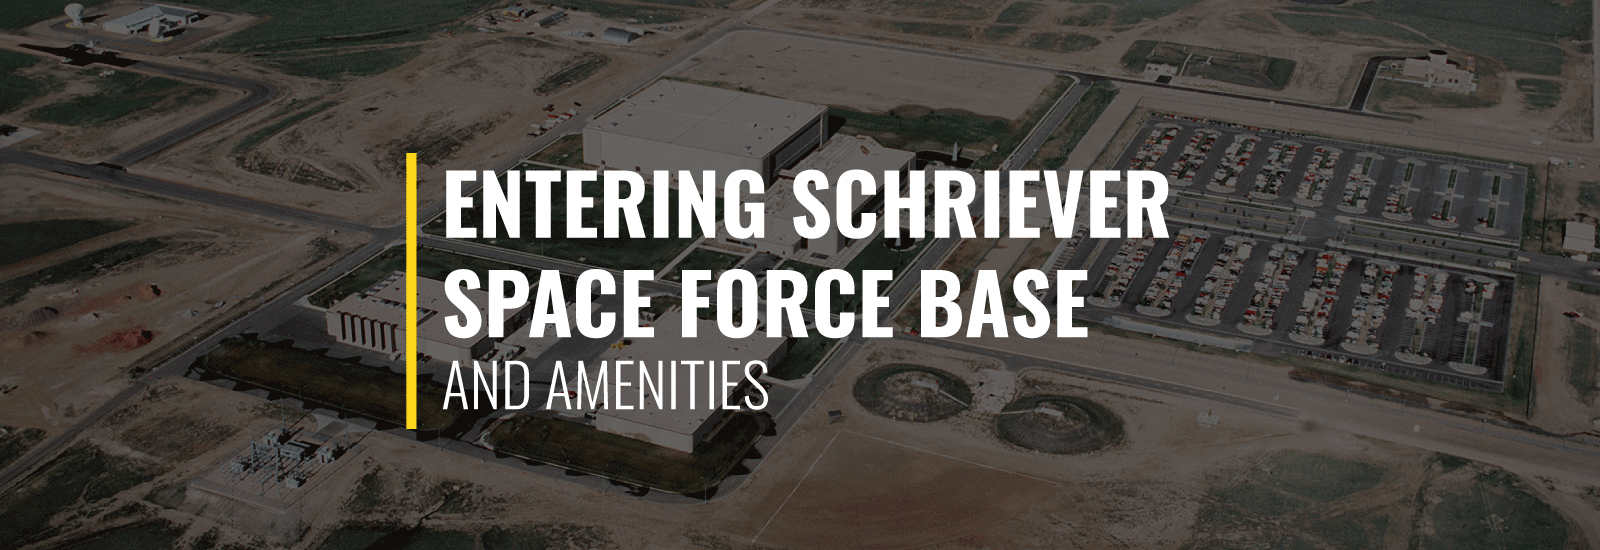 Entering Schriever Air Force Base (Now Space Force Base) and Amenities